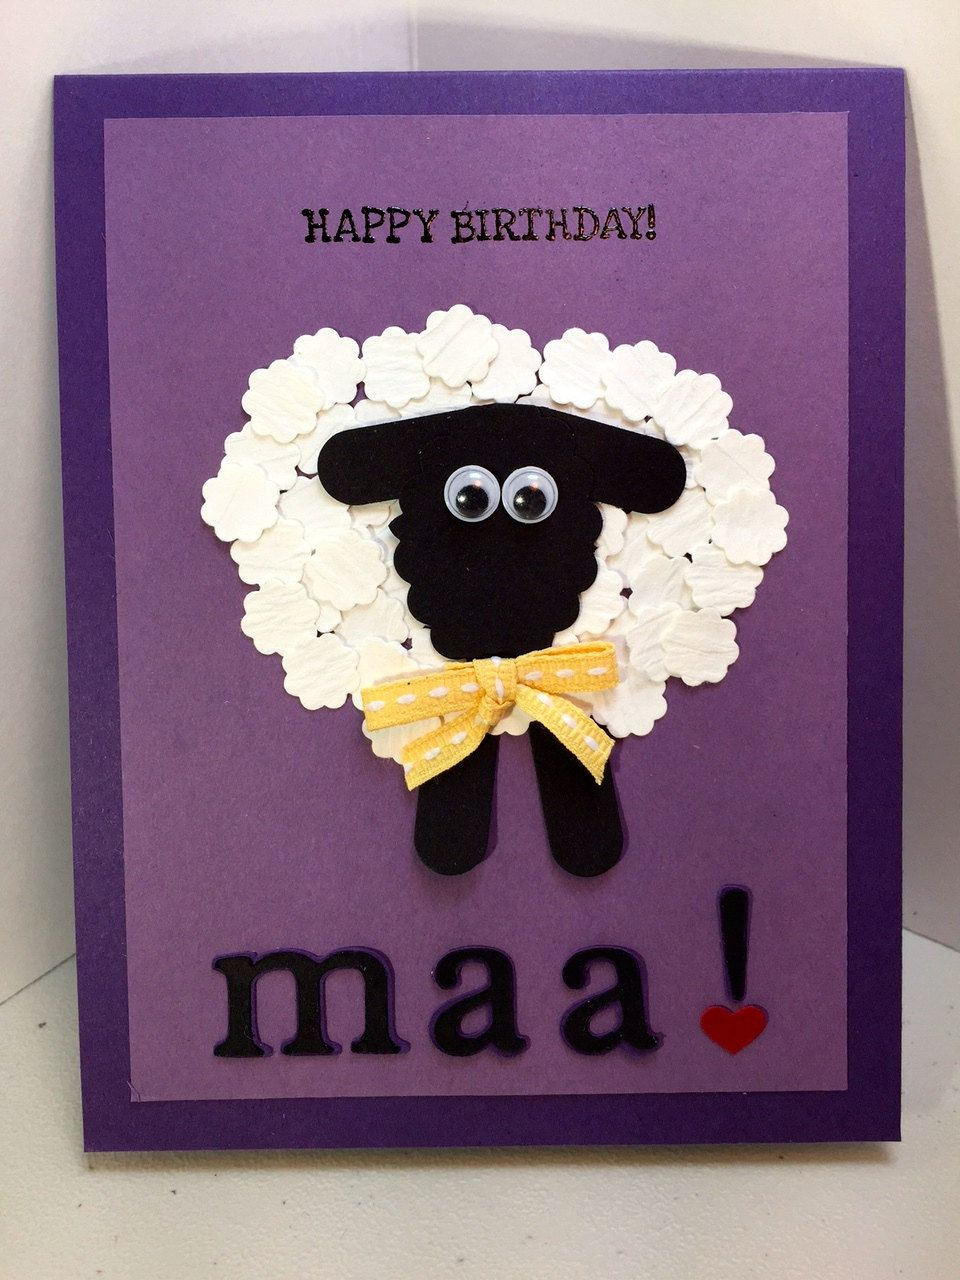 Happy Birthday Maa! Humerous Handmade Birthday Card for